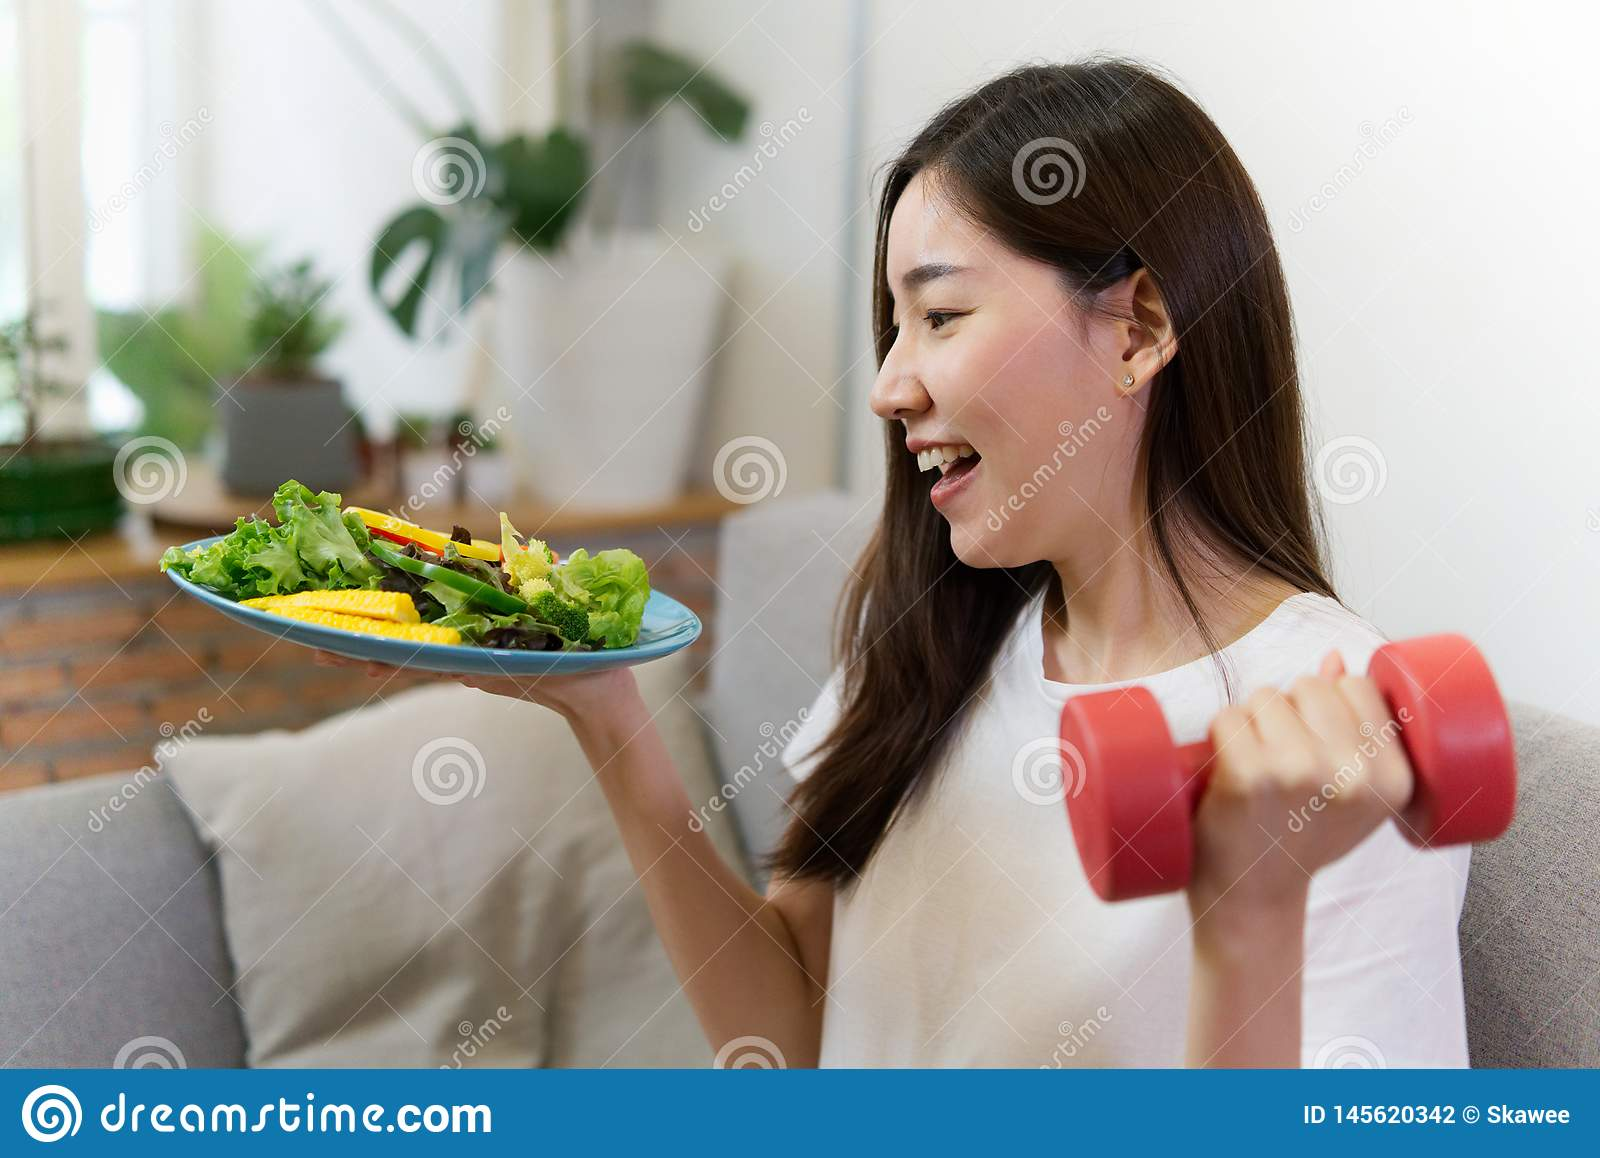 Young Asian girl holding salad and red dumbbell is sitting on sofa with smile face.